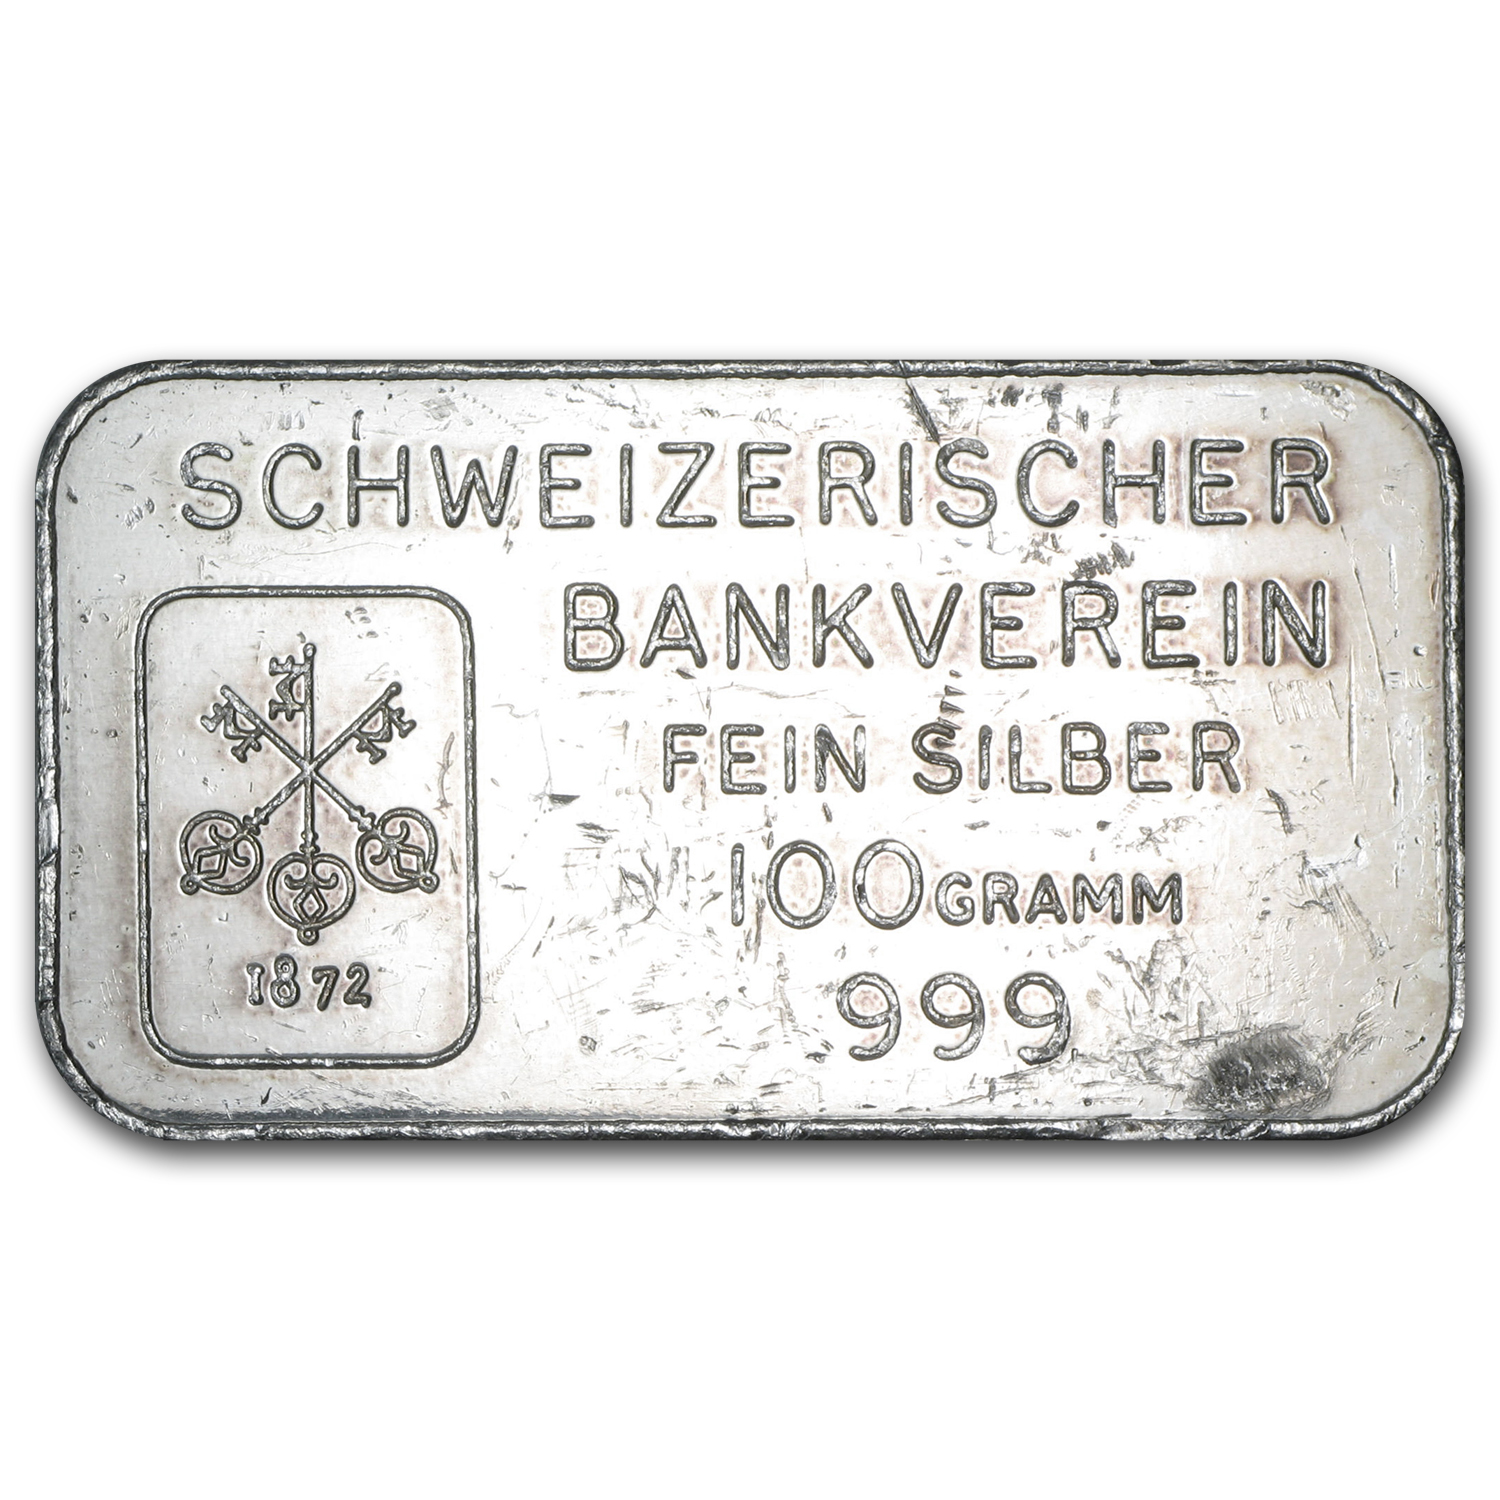 100 gram Silver Bar - Johnson Matthey (London/Schweizerischer)